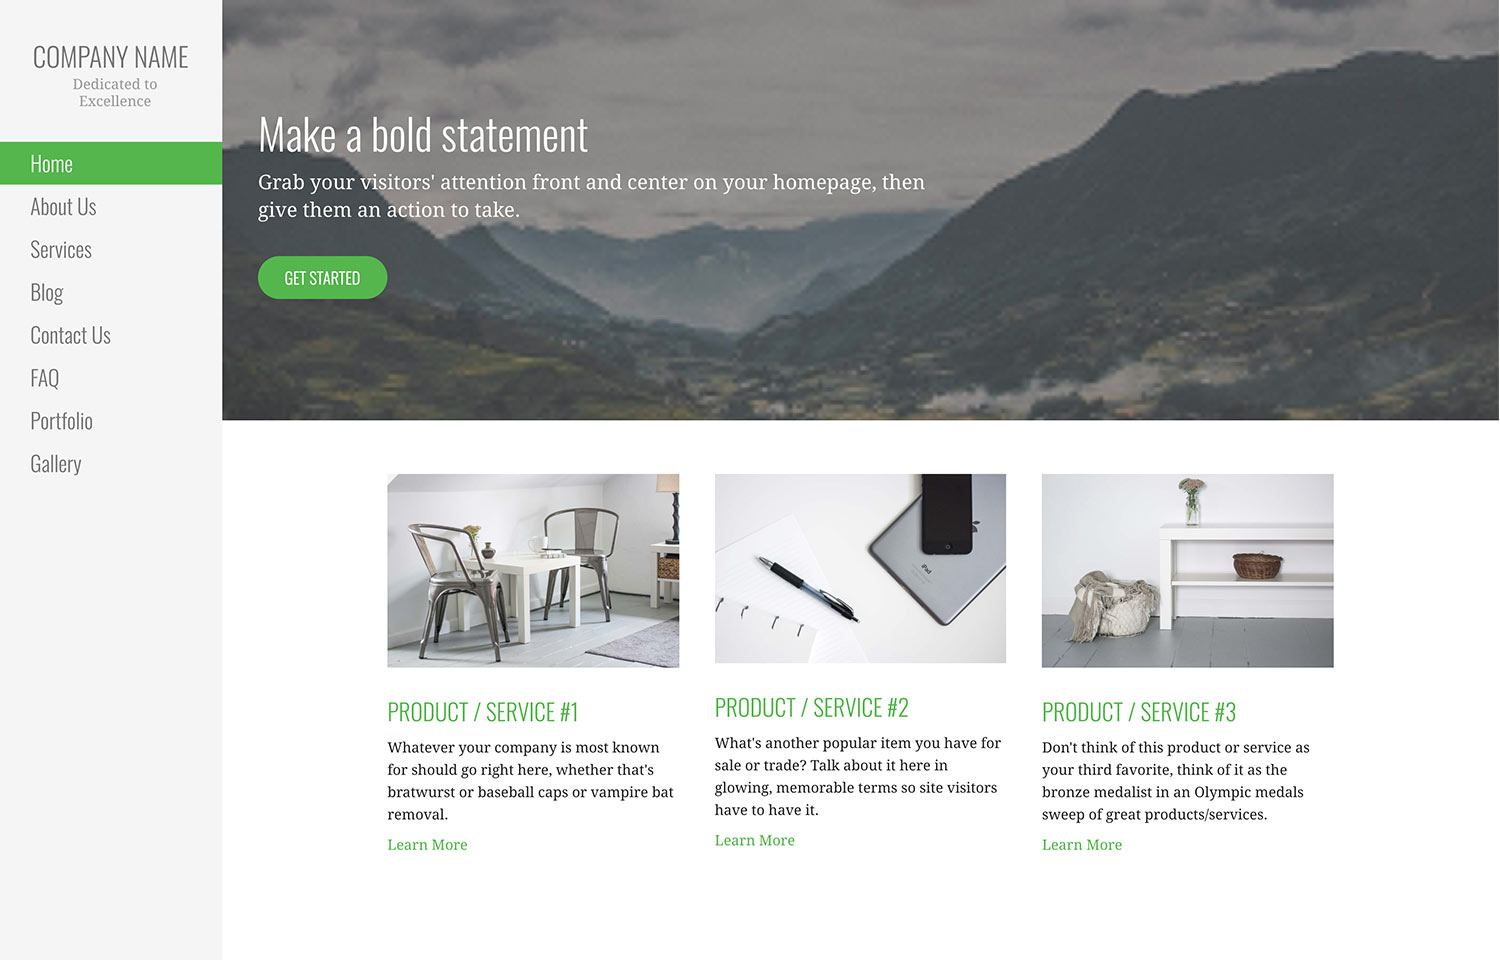 WordPress Themes | Responsive designs for your site - GoDaddy